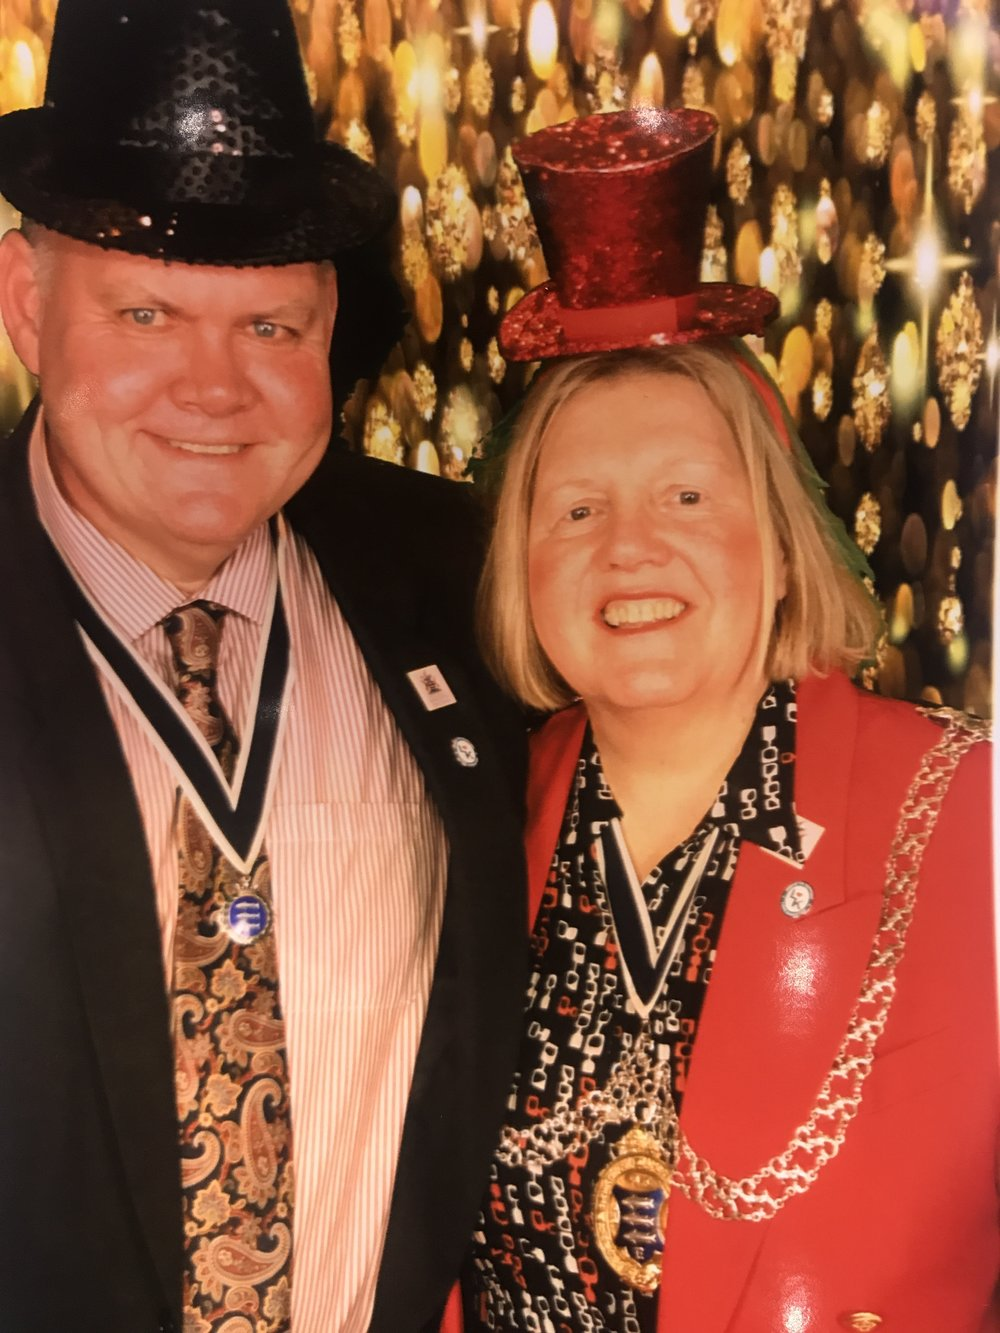 Kingston Mayor and consort in the magic booth